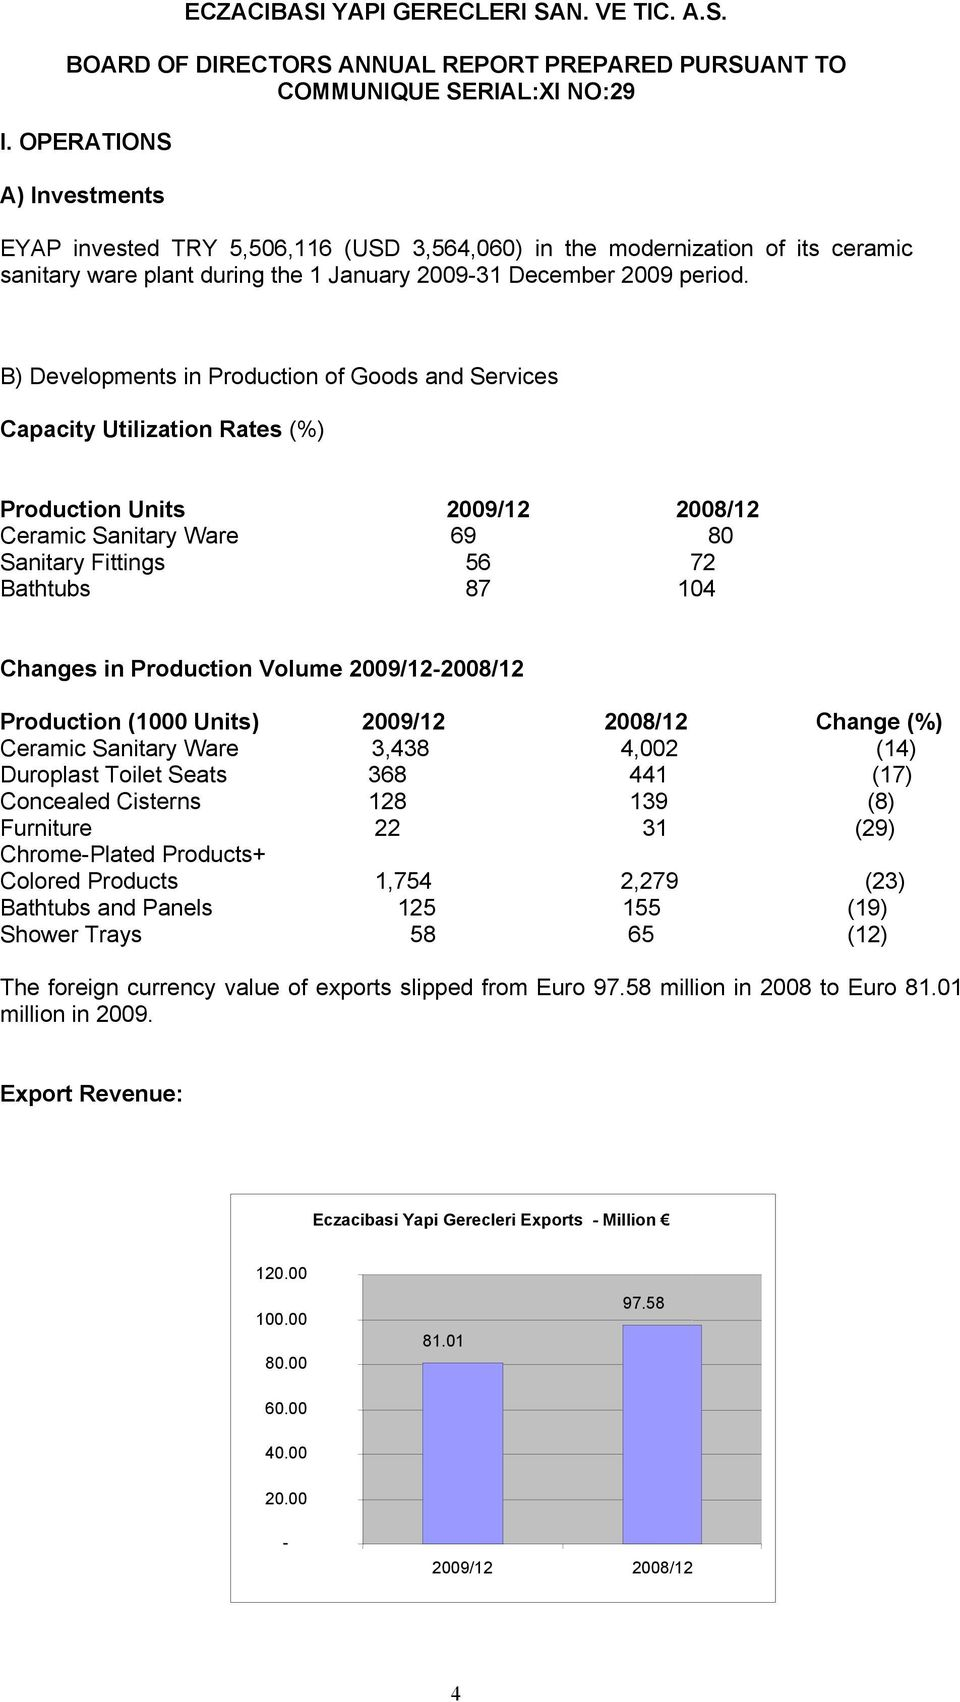 B) Developments in Production of Goods and Services Capacity Utilization Rates (%) Production Units 2009/12 2008/12 Ceramic Sanitary Ware 69 80 Sanitary Fittings 56 72 Bathtubs 87 104 Changes in